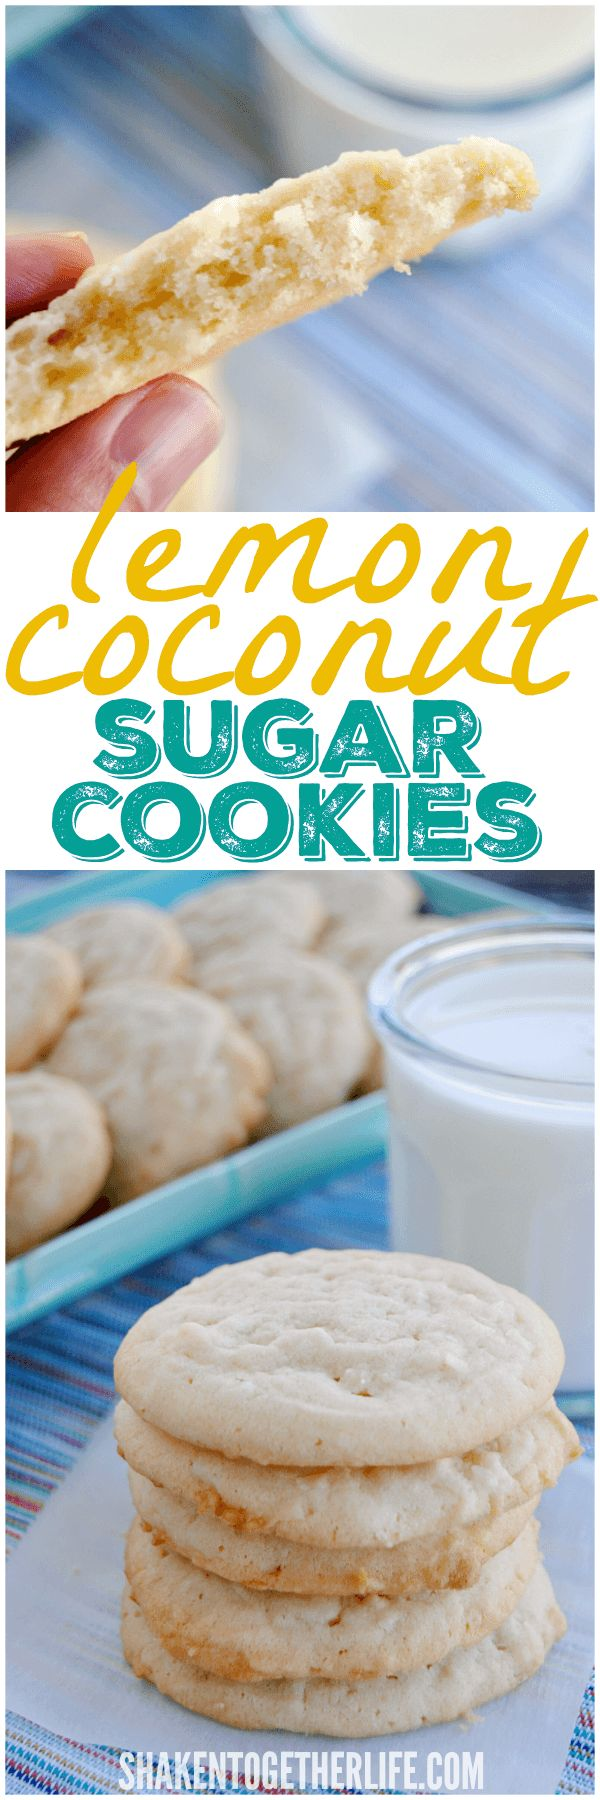 Lemon Coconut Sugar Cookies! One bowl, no dough to roll out ... just stir, scoop and bake!